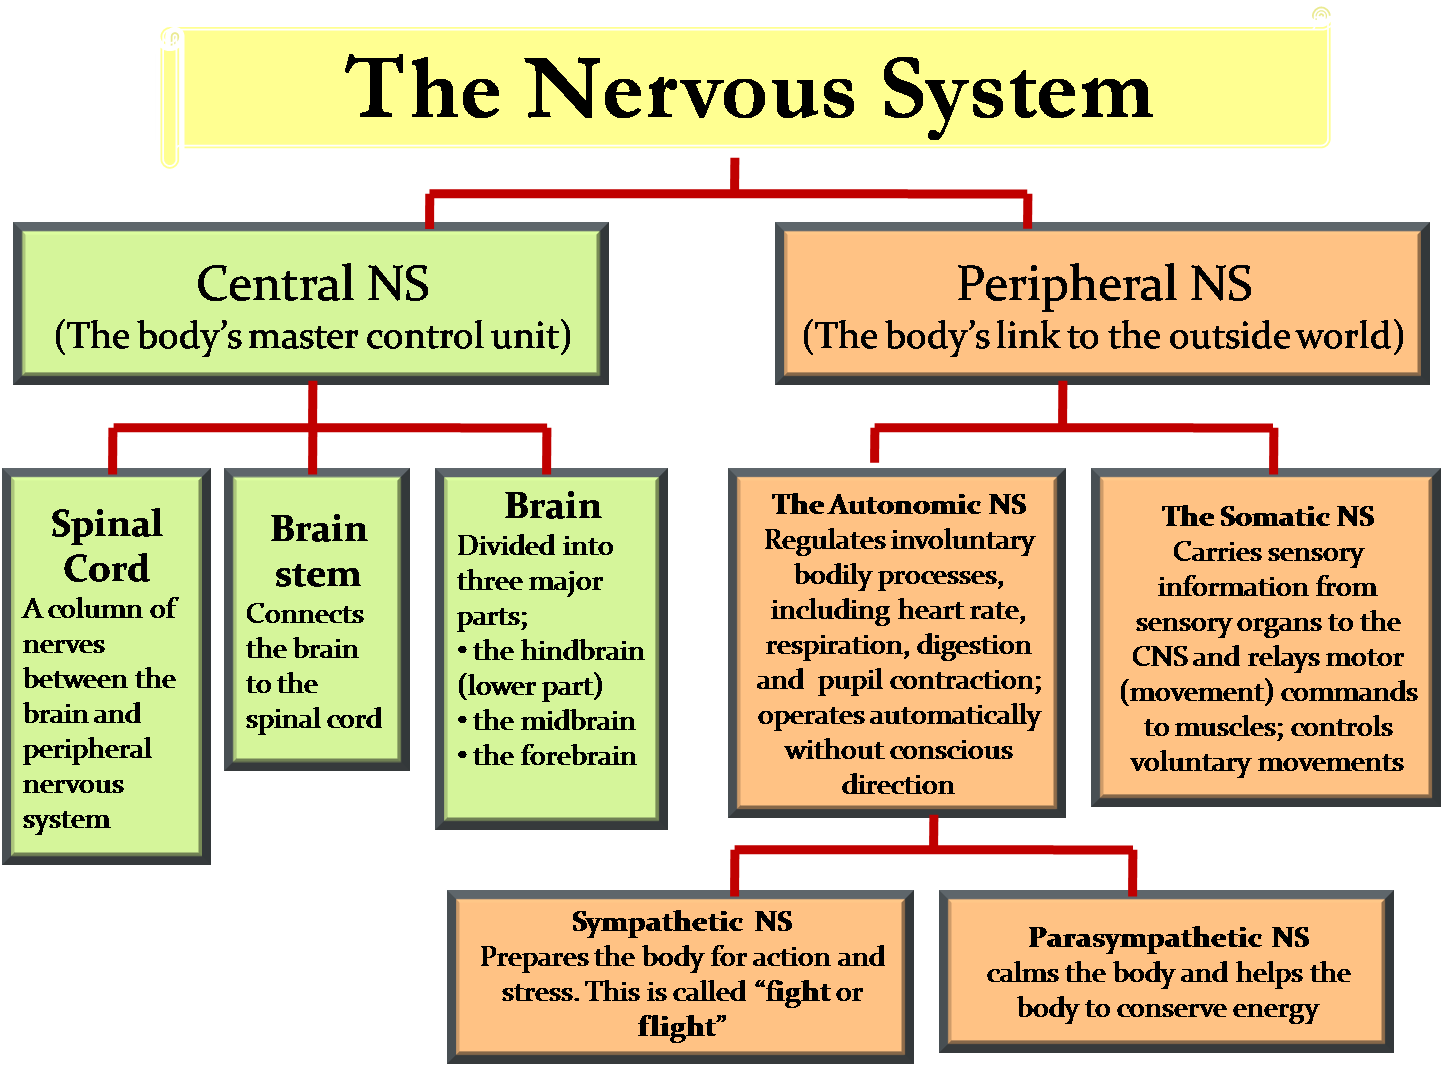 the central nervous system The nervous system is an organ system containing a network of specialized cells called neurons that coordinate the actions of an animal and transmit signals between different parts of its body.